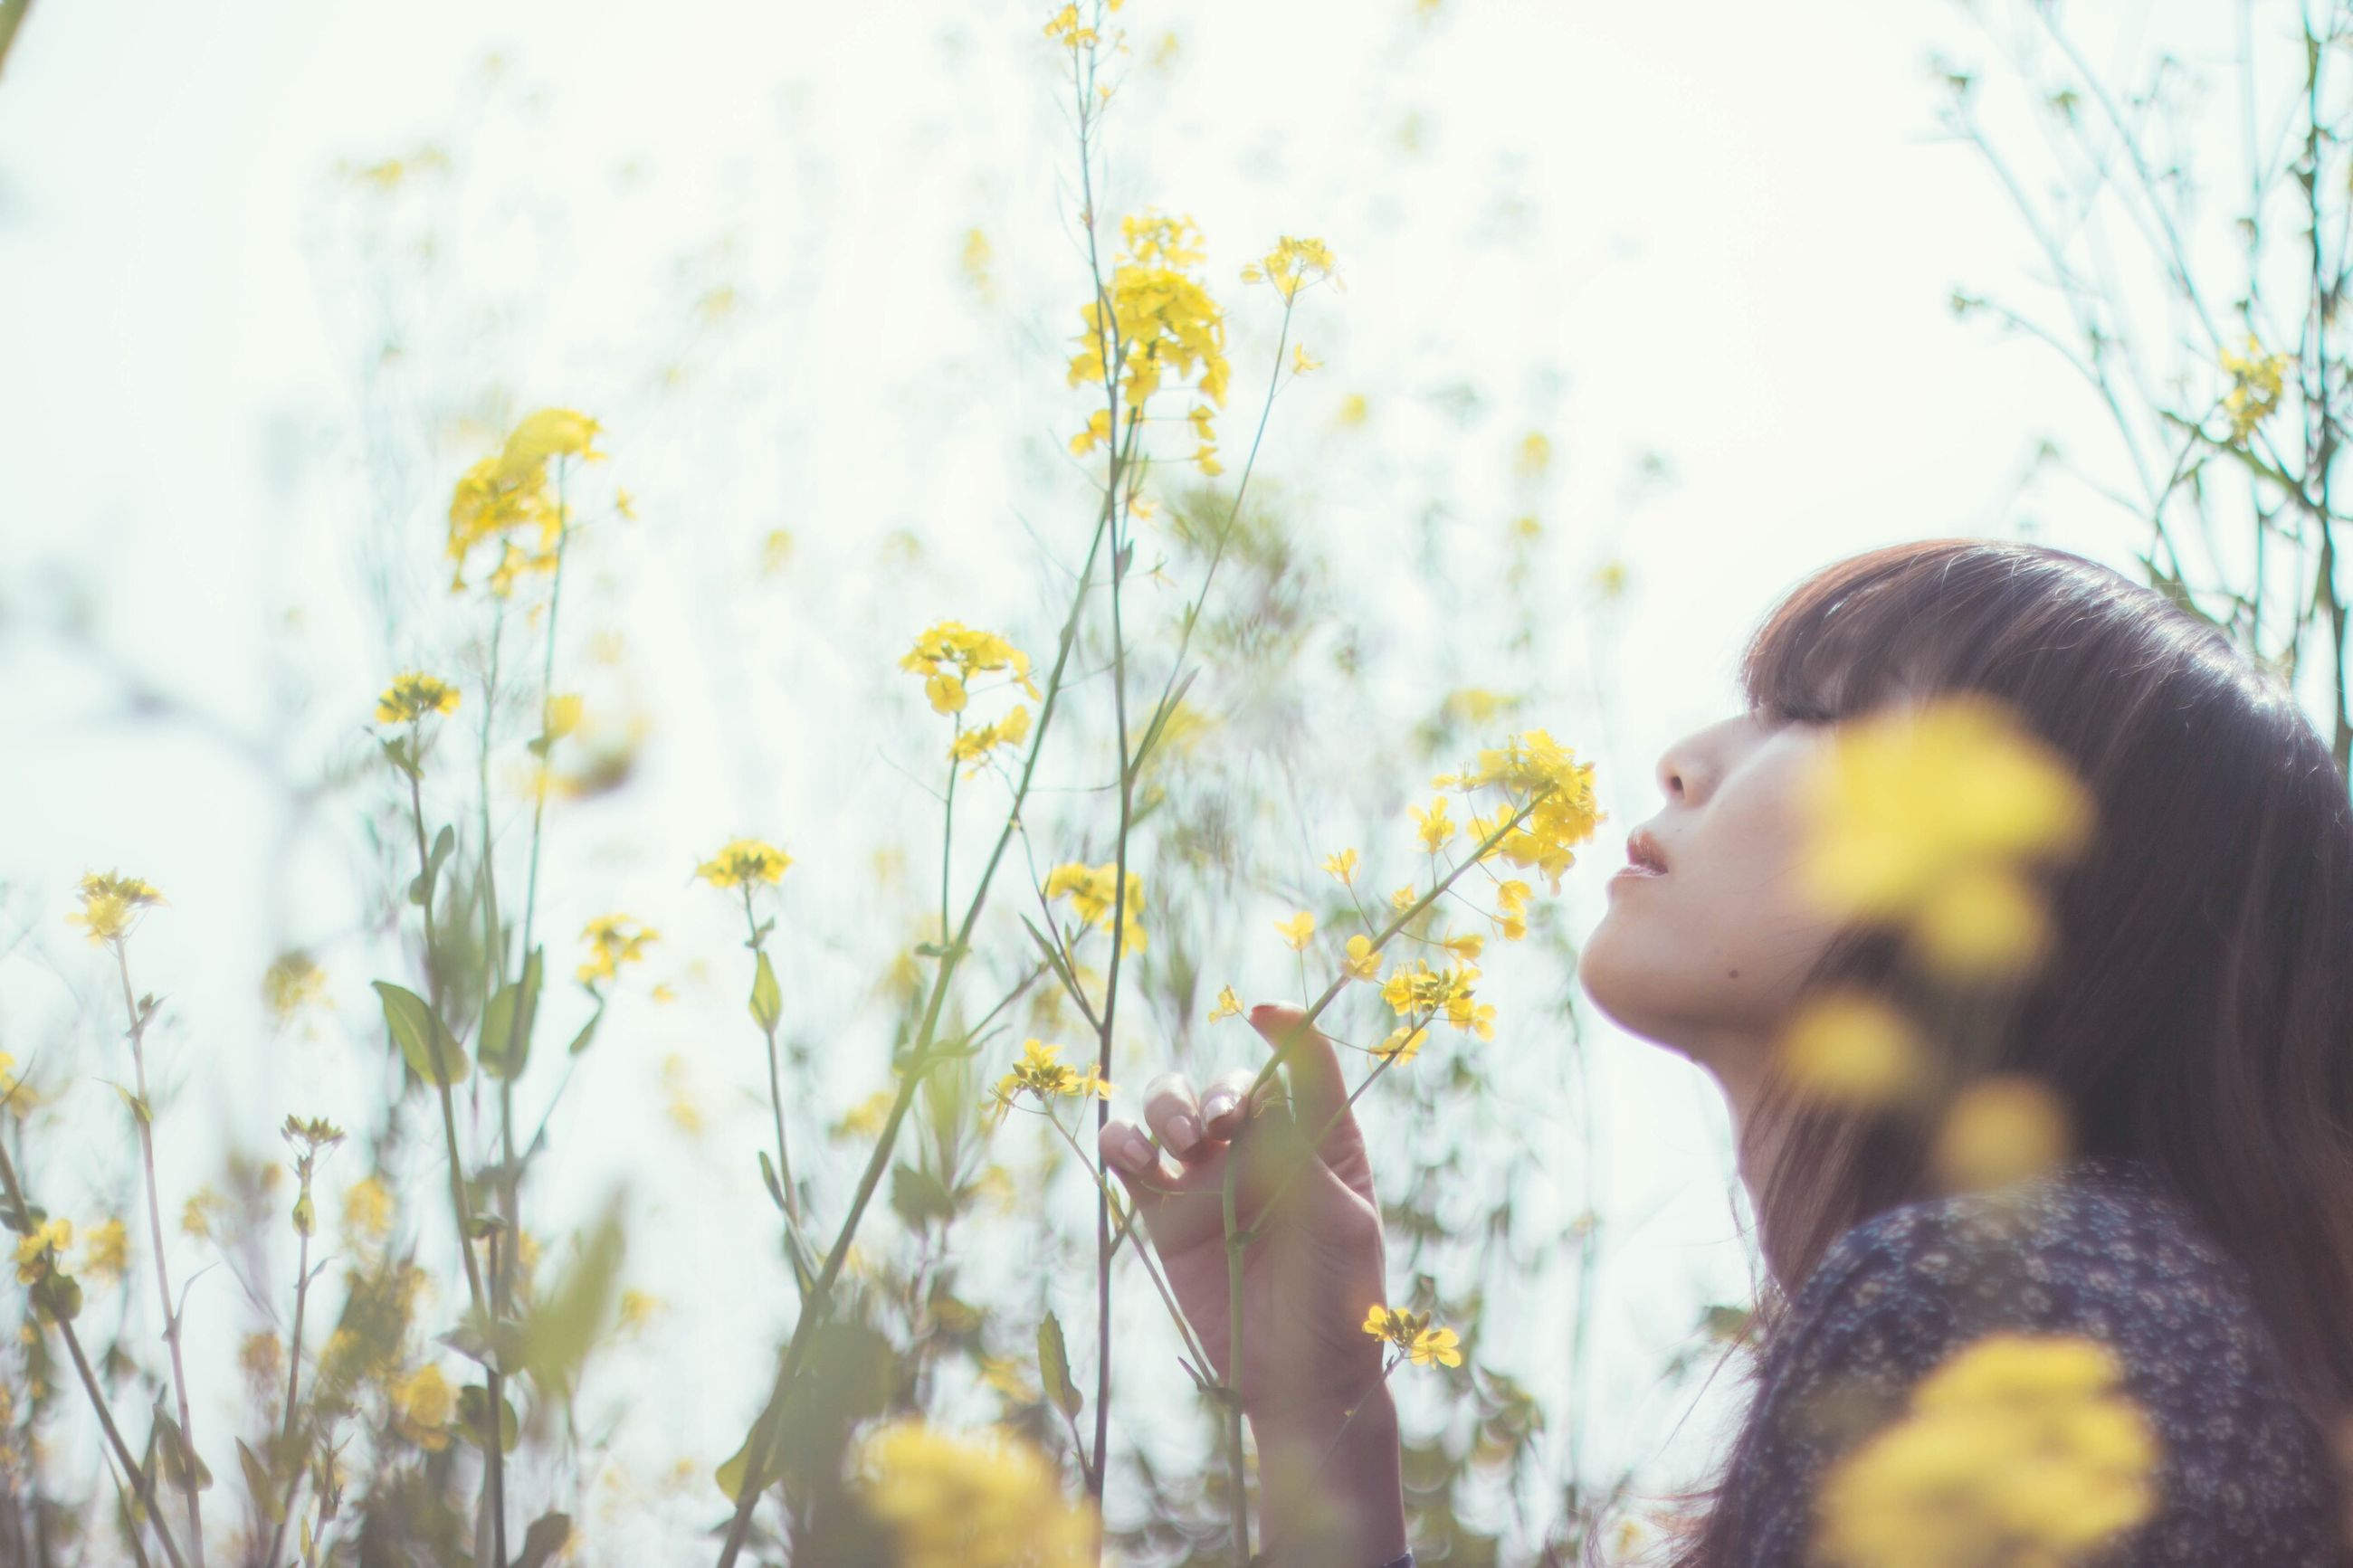 lifestyles, young women, real people, young adult, one person, headshot, leisure activity, flower, outdoors, day, close-up, nature, beauty in nature, women, beautiful woman, sky